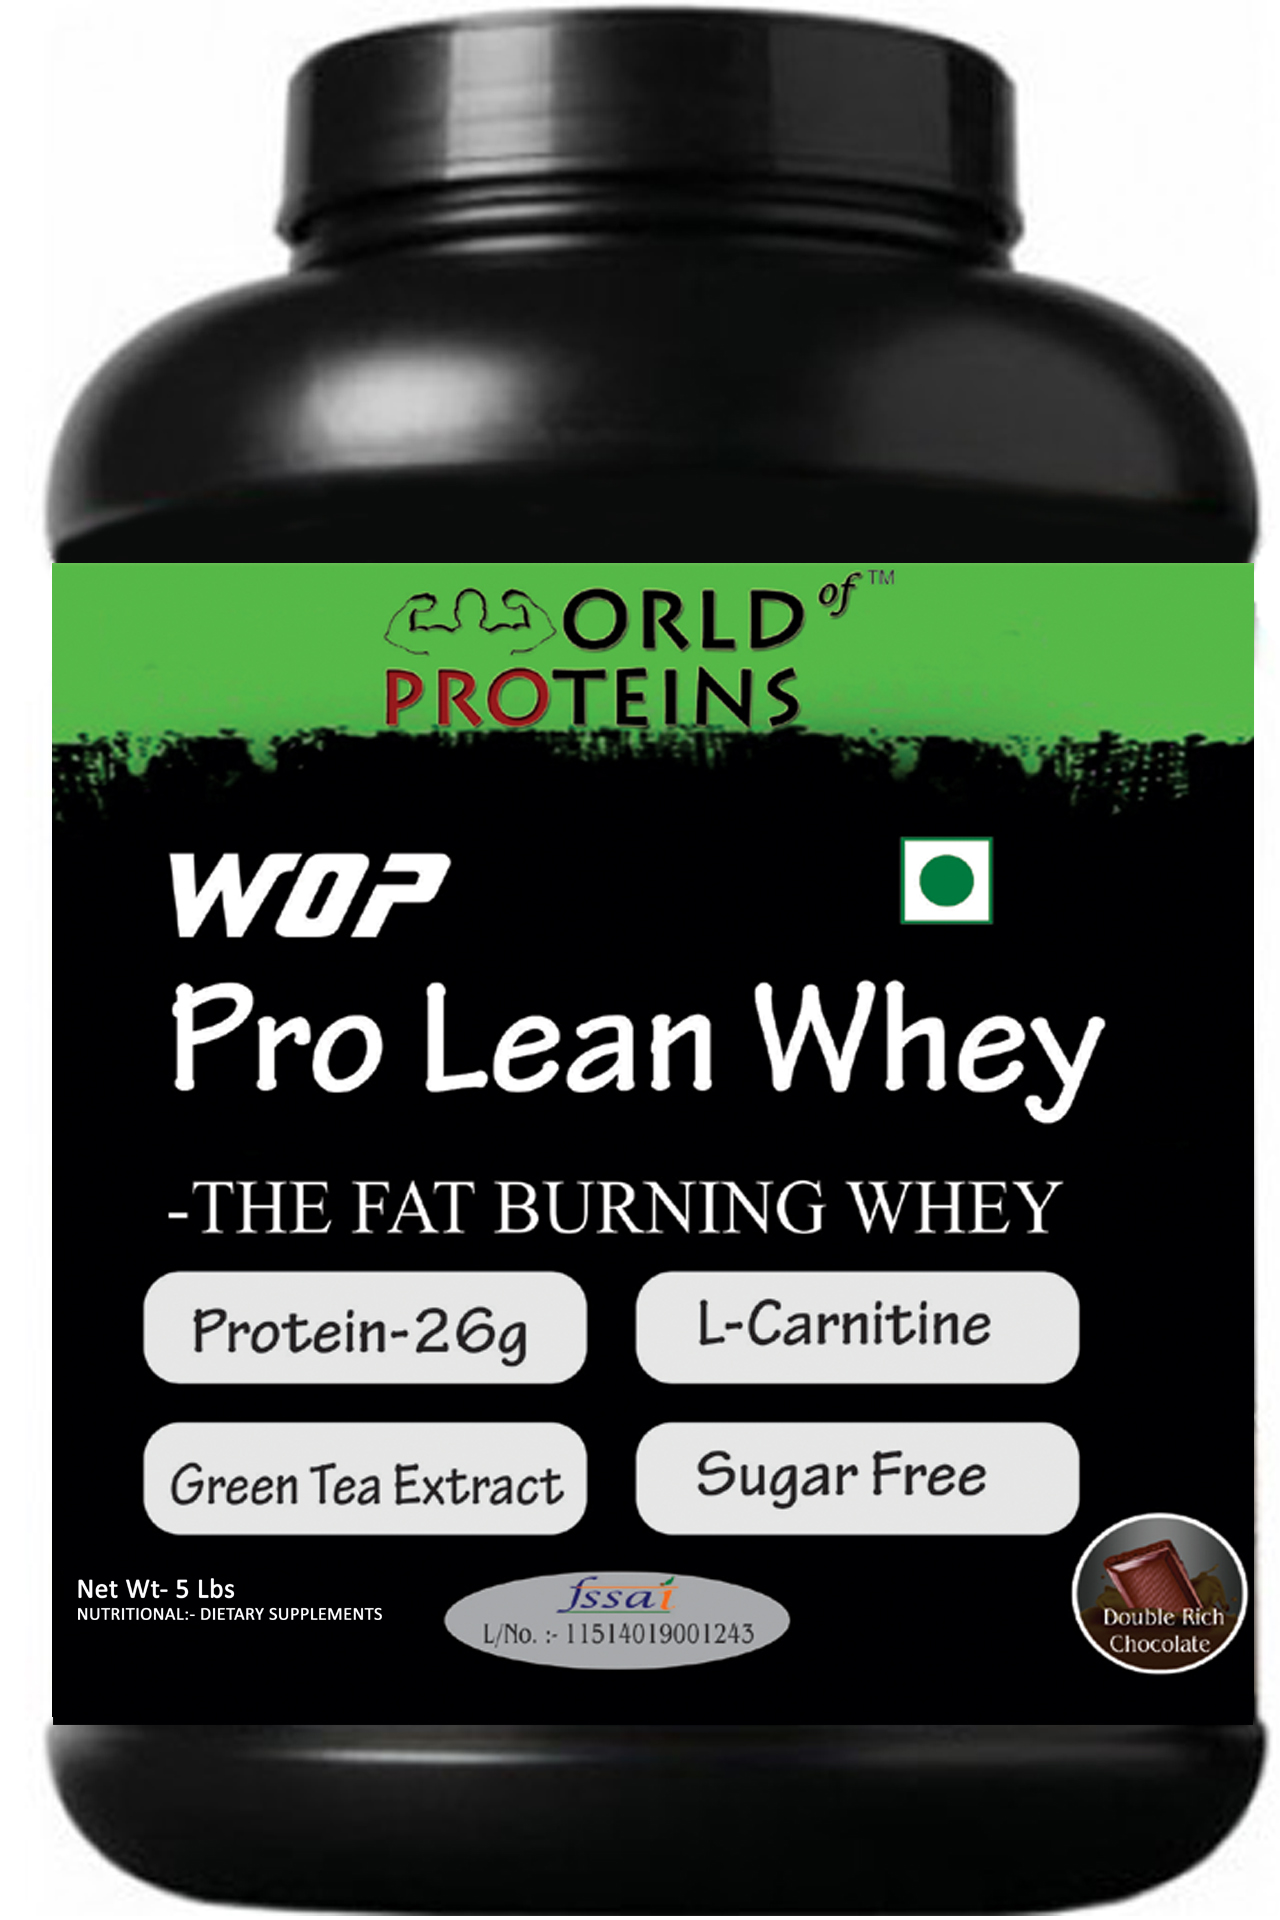 WOP PRO LEAN WHEY,5-lb double-rich-chocolate ,Shaker Free!